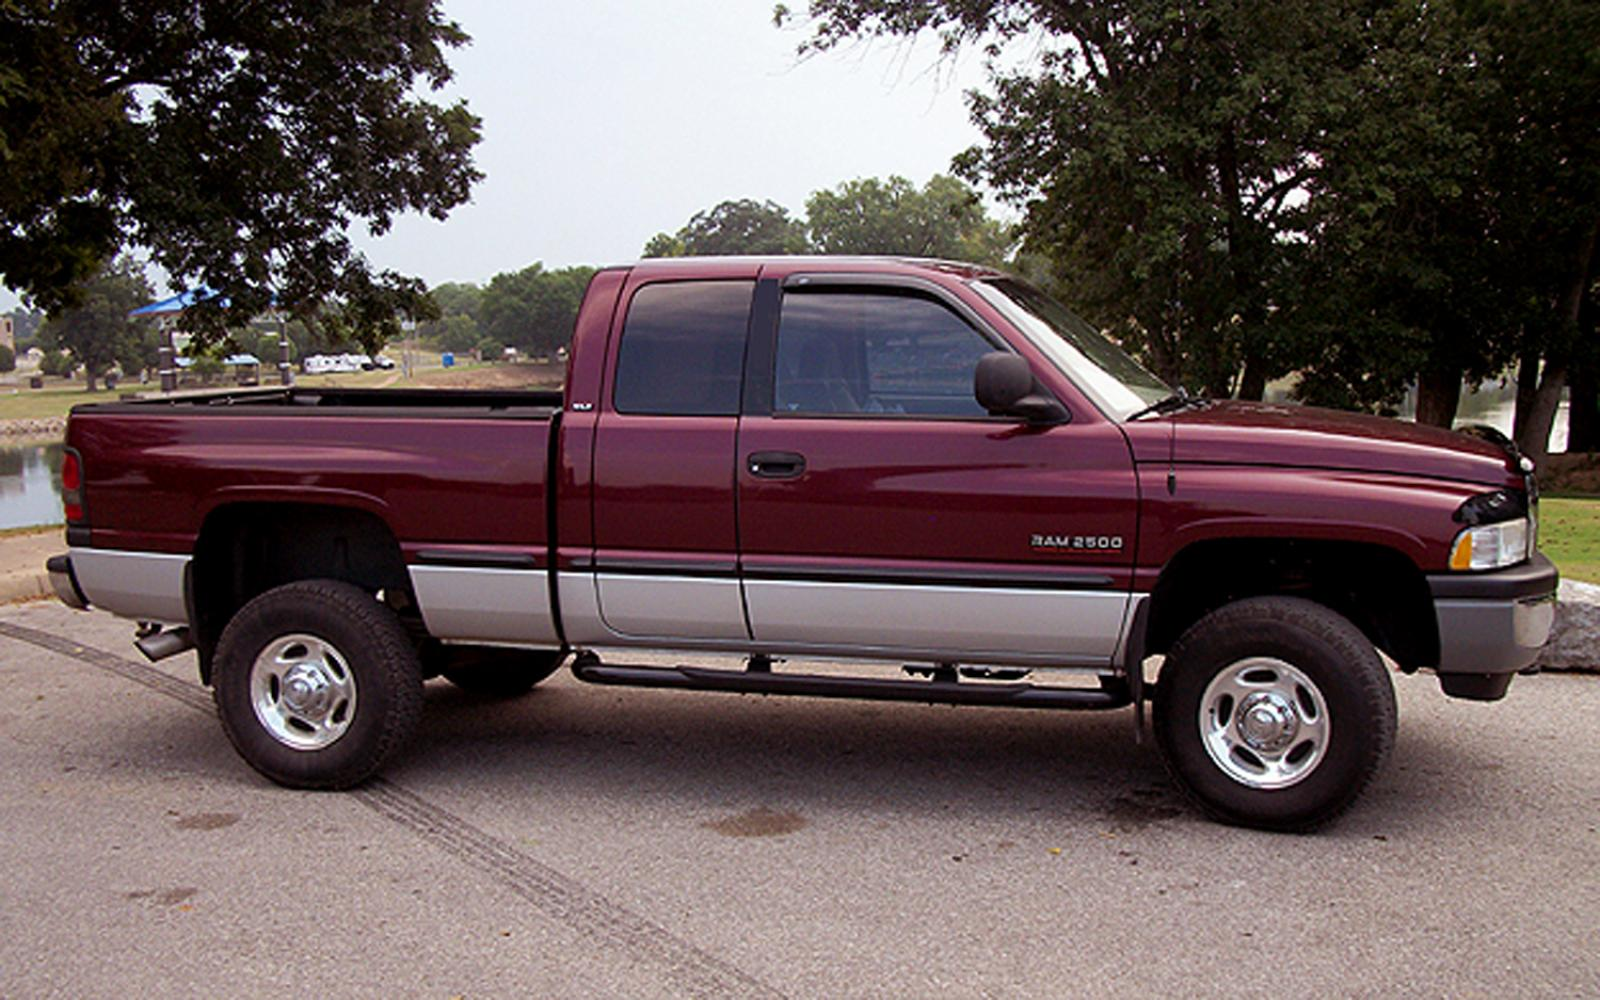 hight resolution of 800 1024 1280 1600 origin 2001 dodge ram